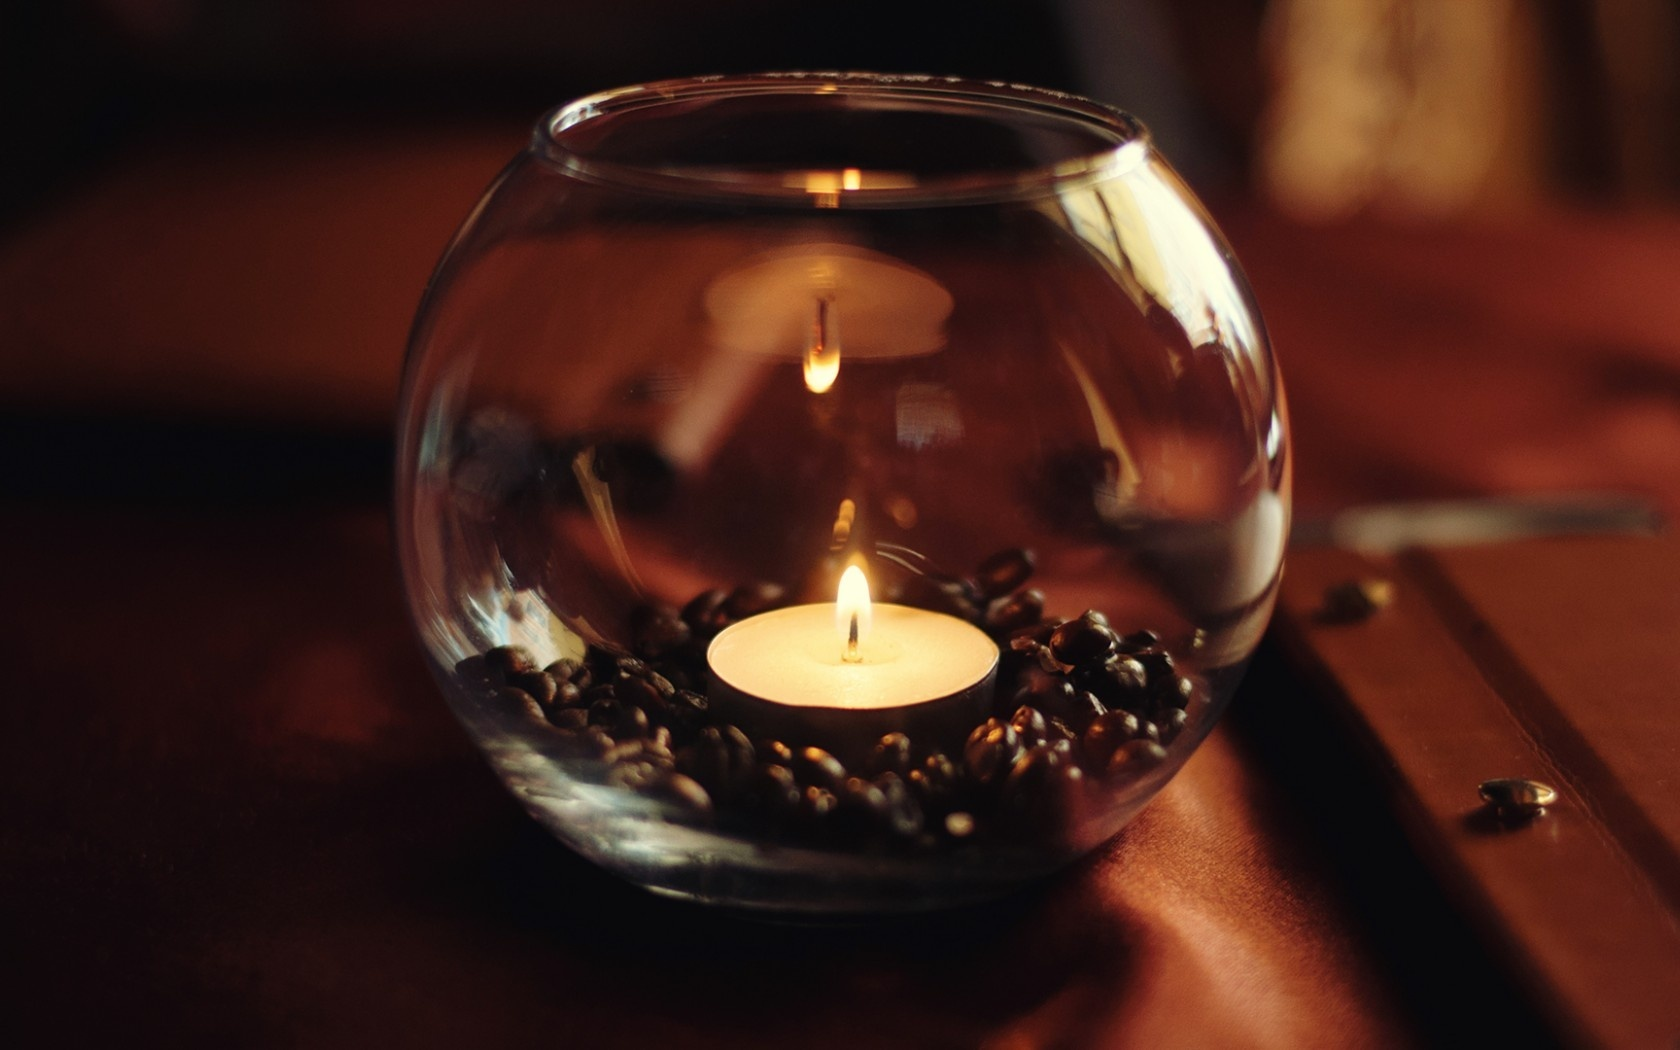 Candle Wallpaper 16401 1680x1050 Px Hdwallsource Com